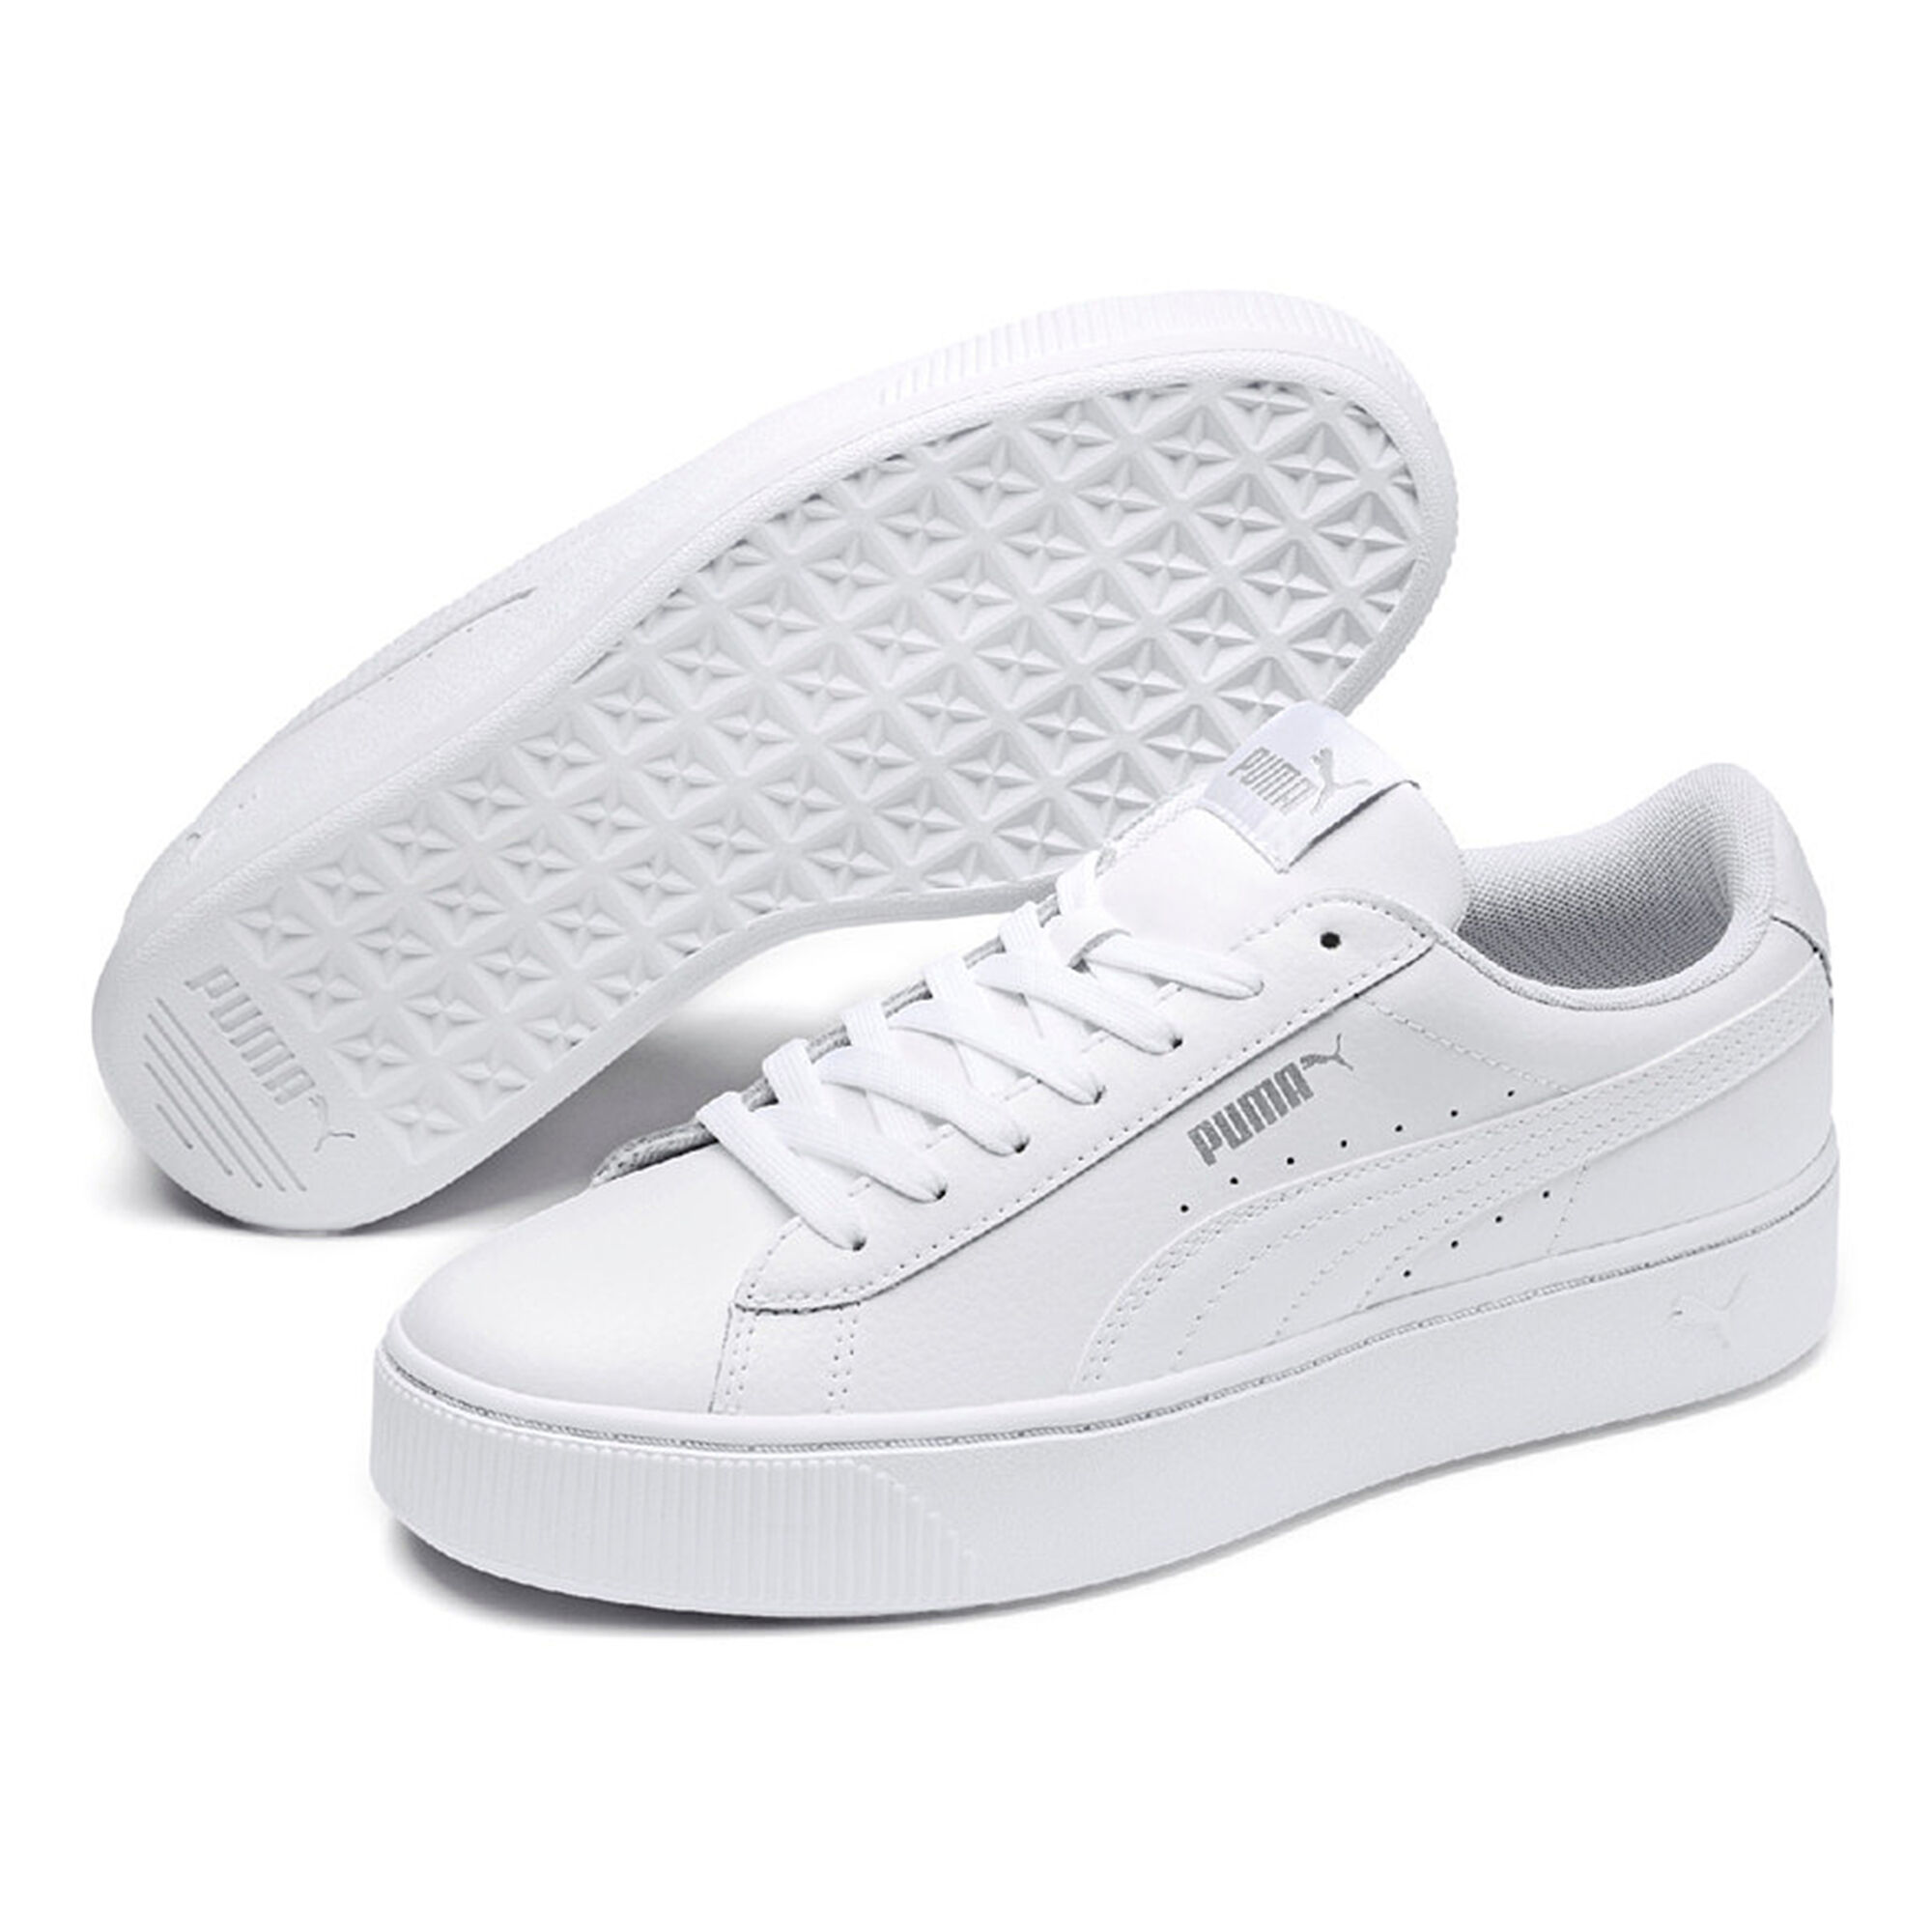 d6c2a6ecf buy Puma Vikky Stacked L Sneakers Women - White, Grey online ...